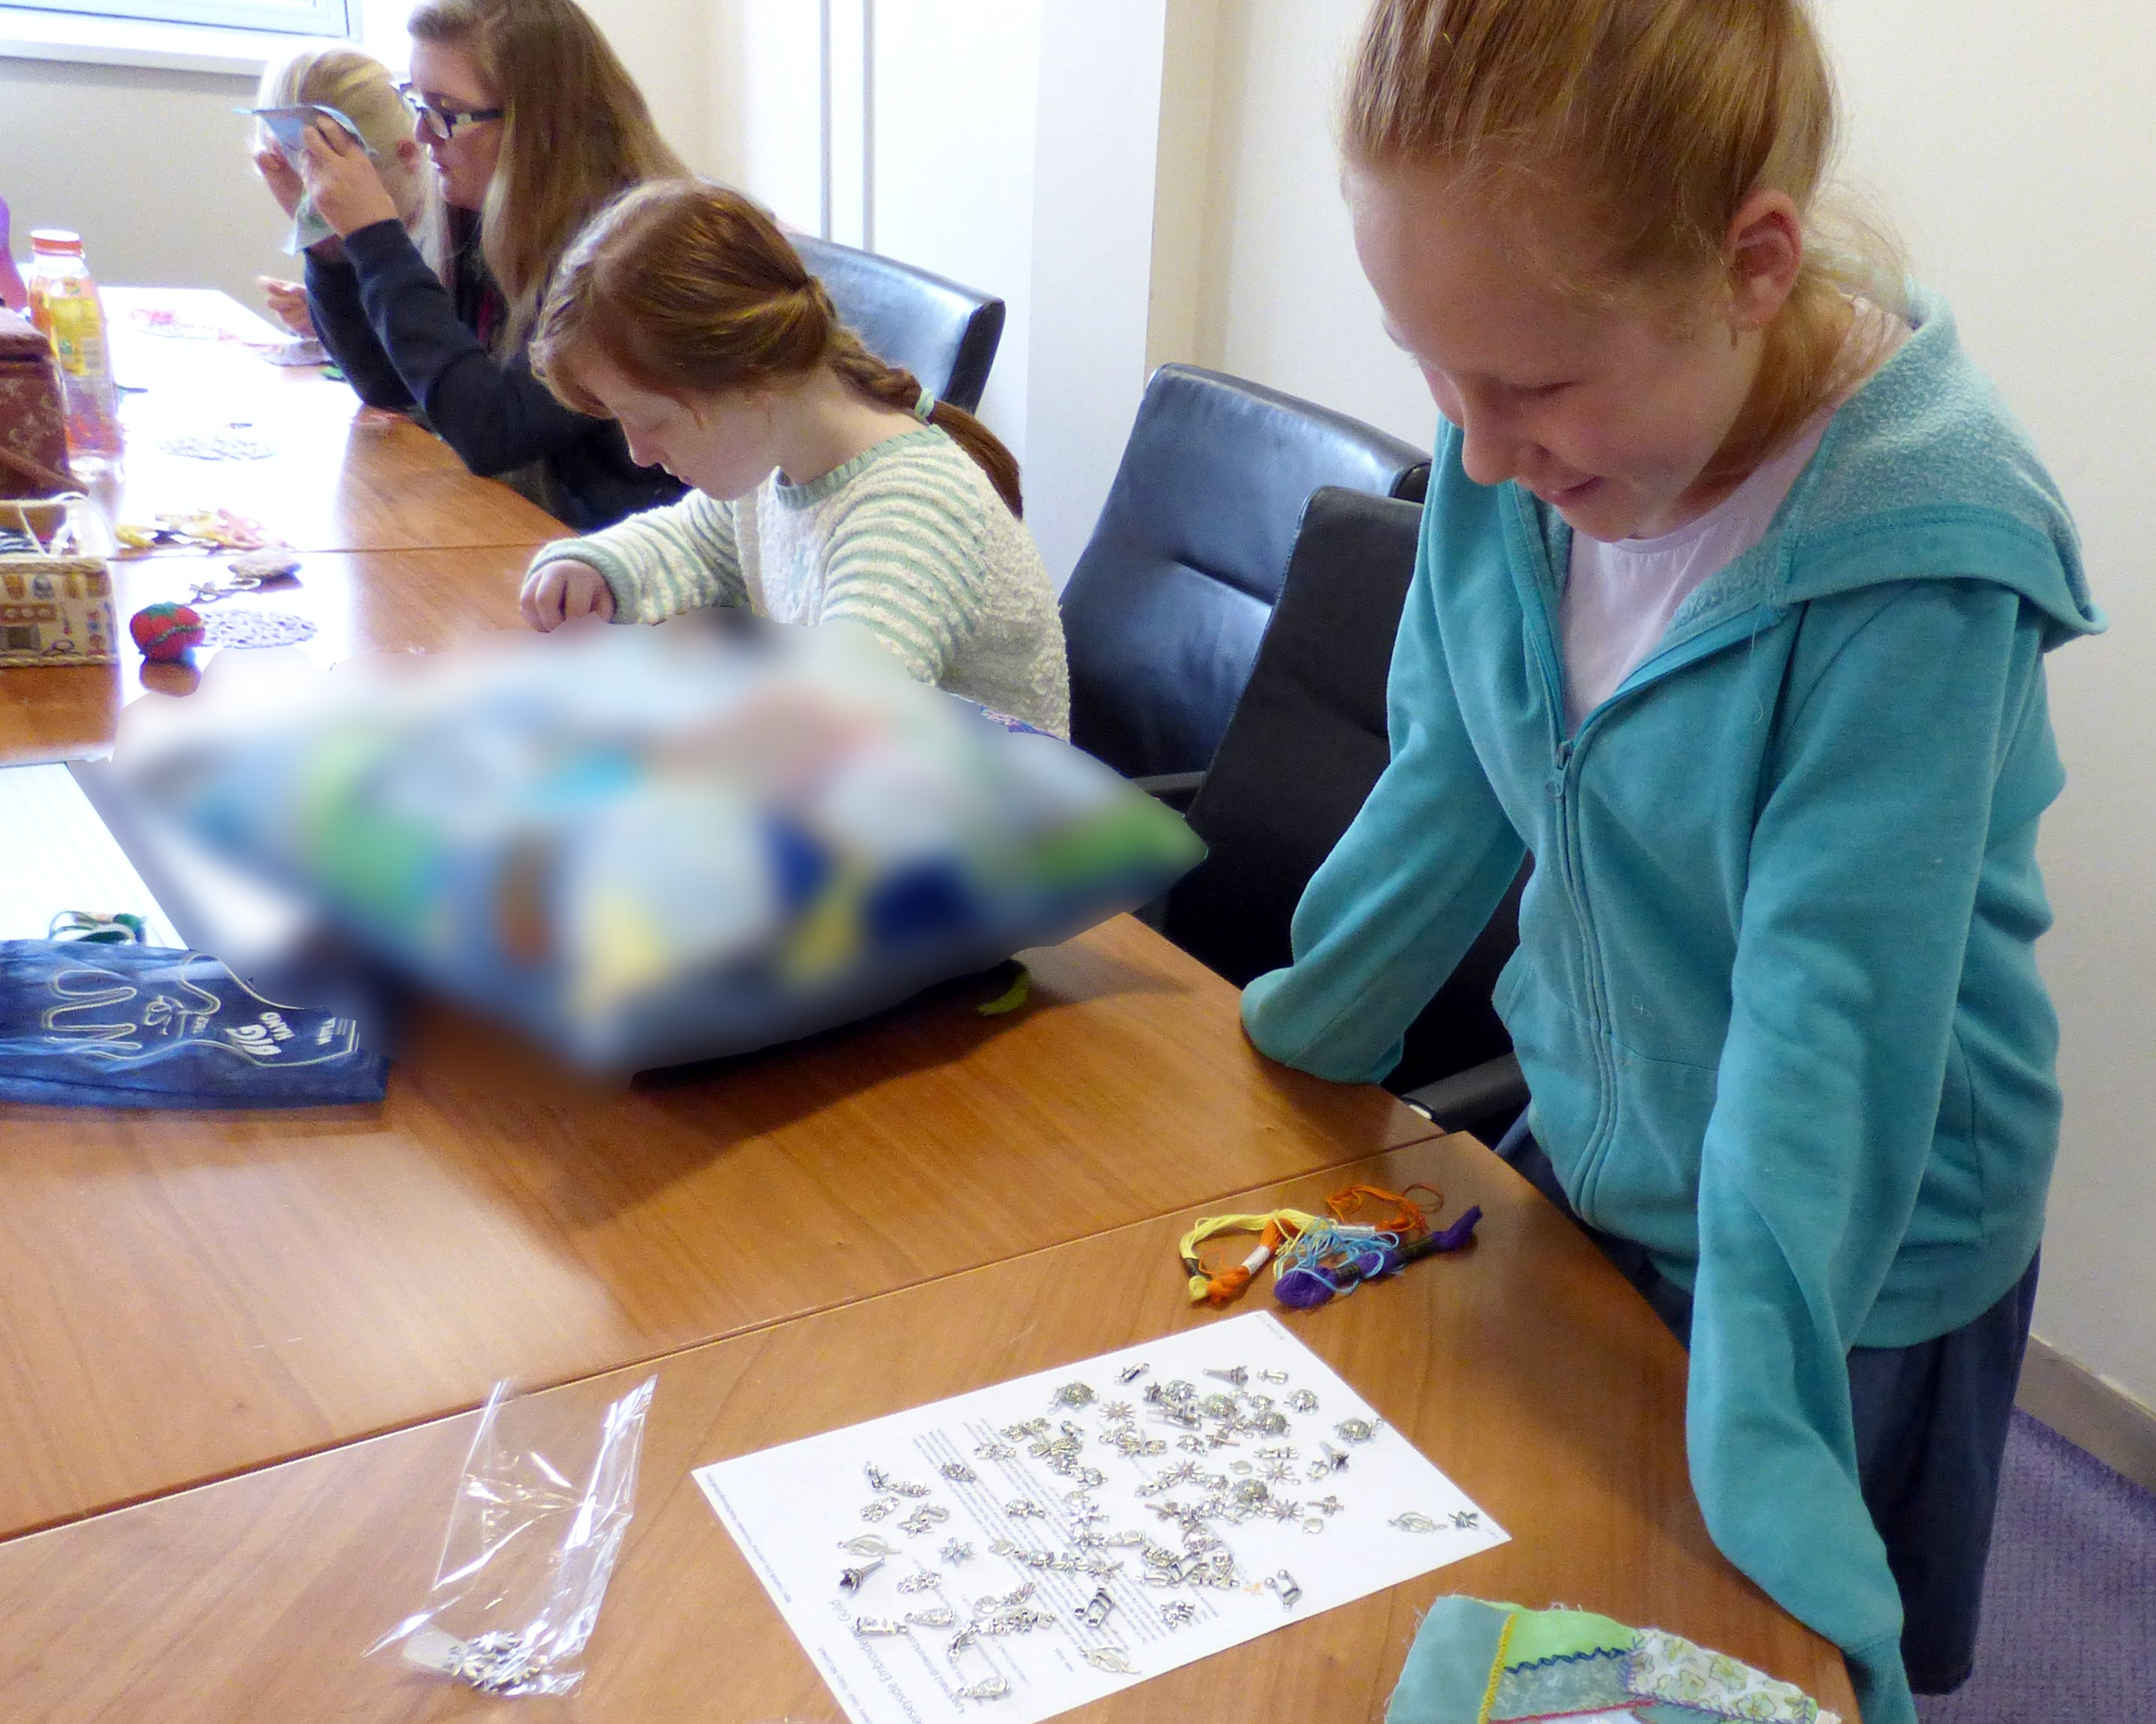 choosing charms for the crazy patchwork bag at YE group , Nov 2016